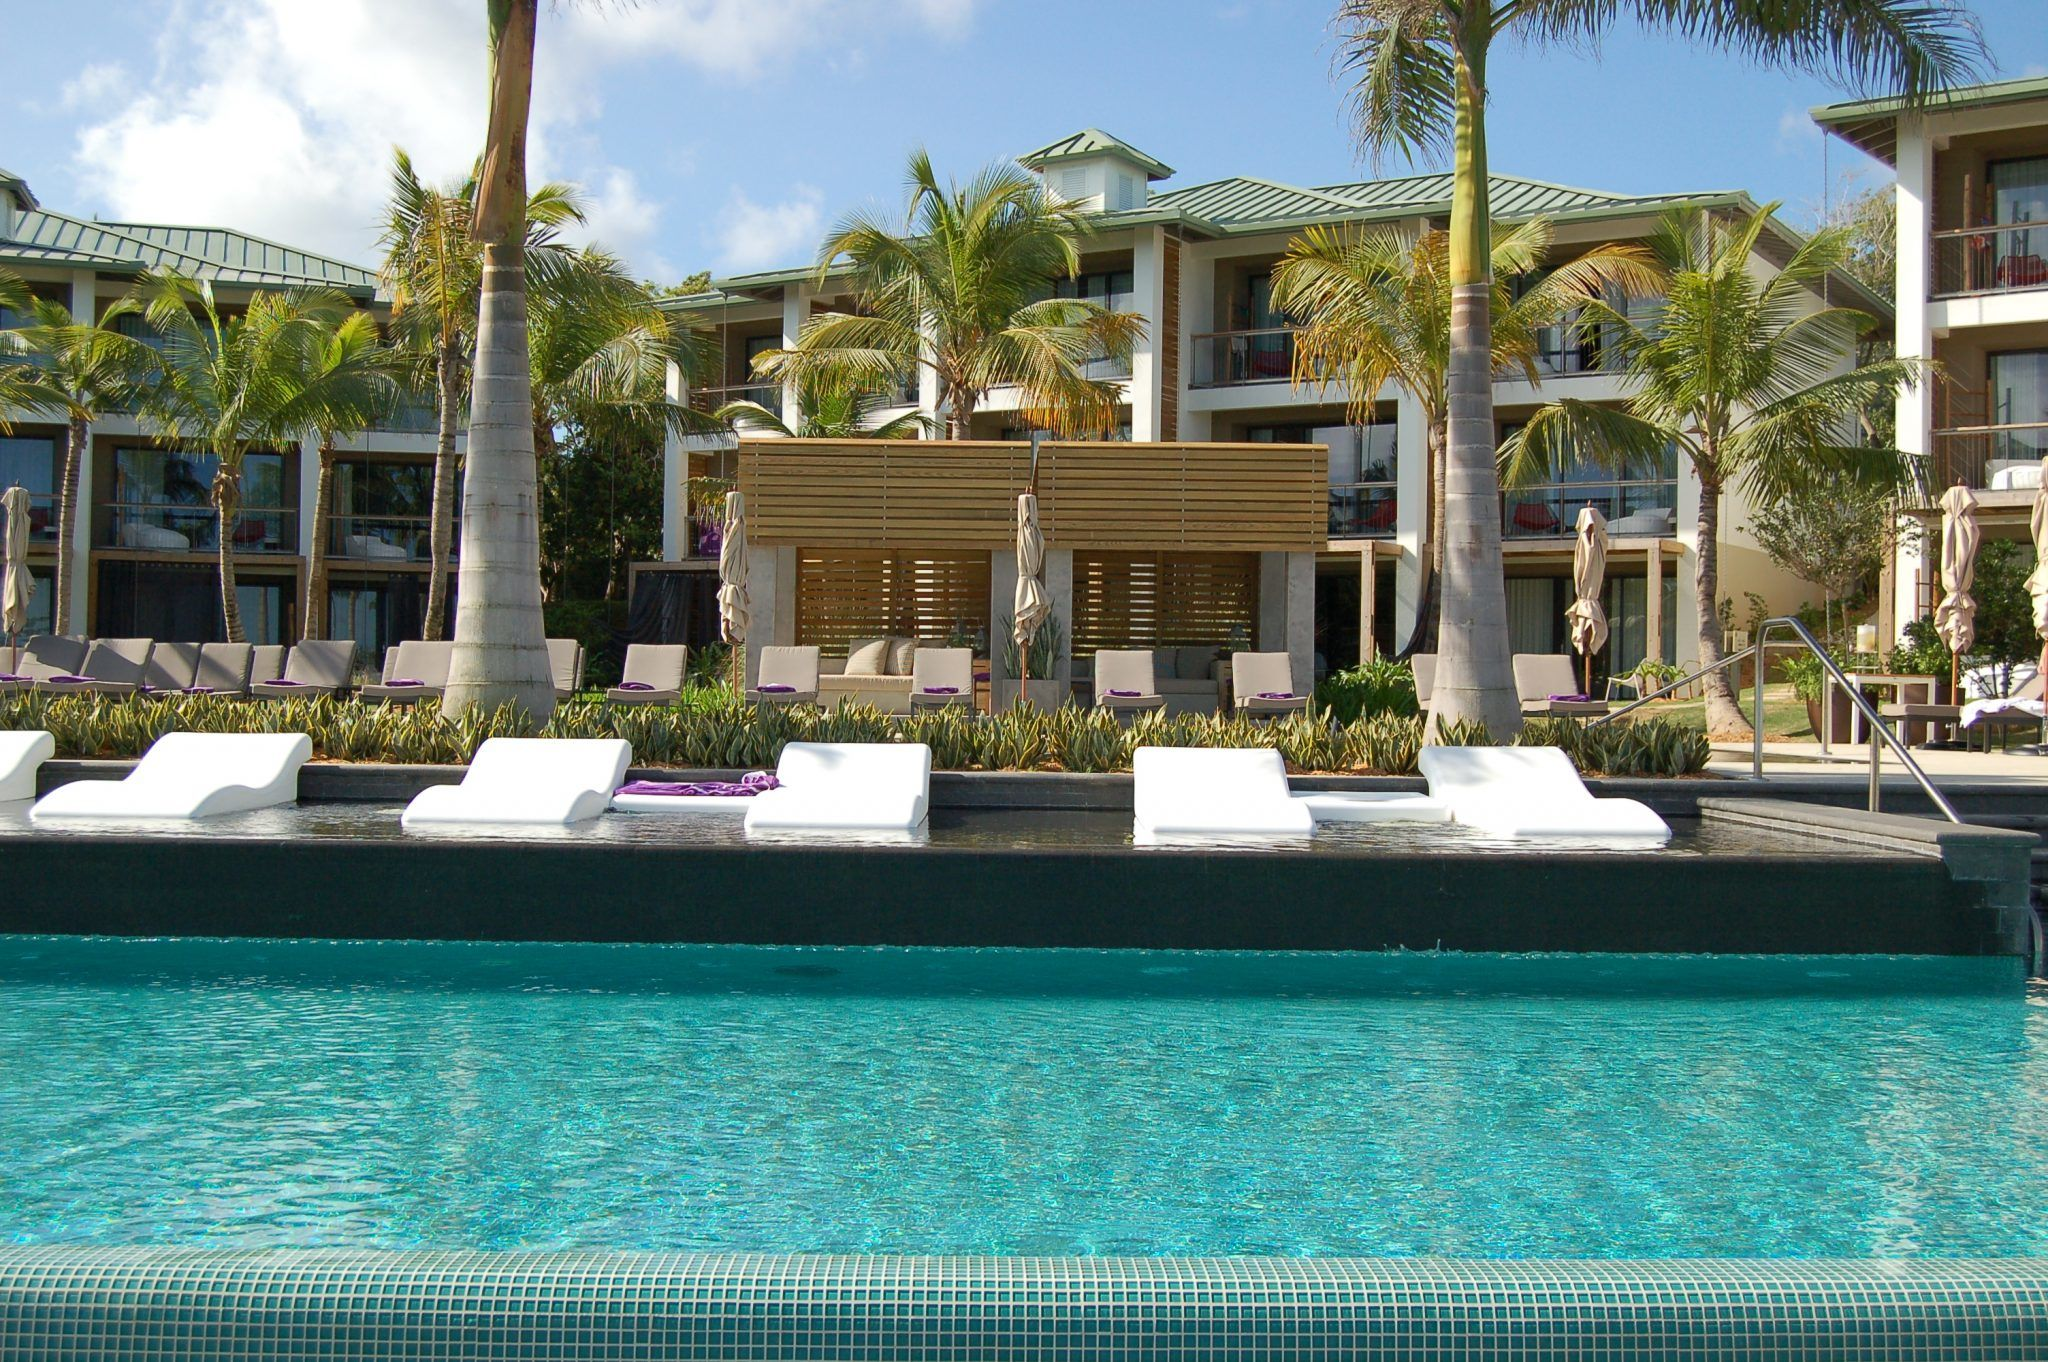 The W Hotel Vieques